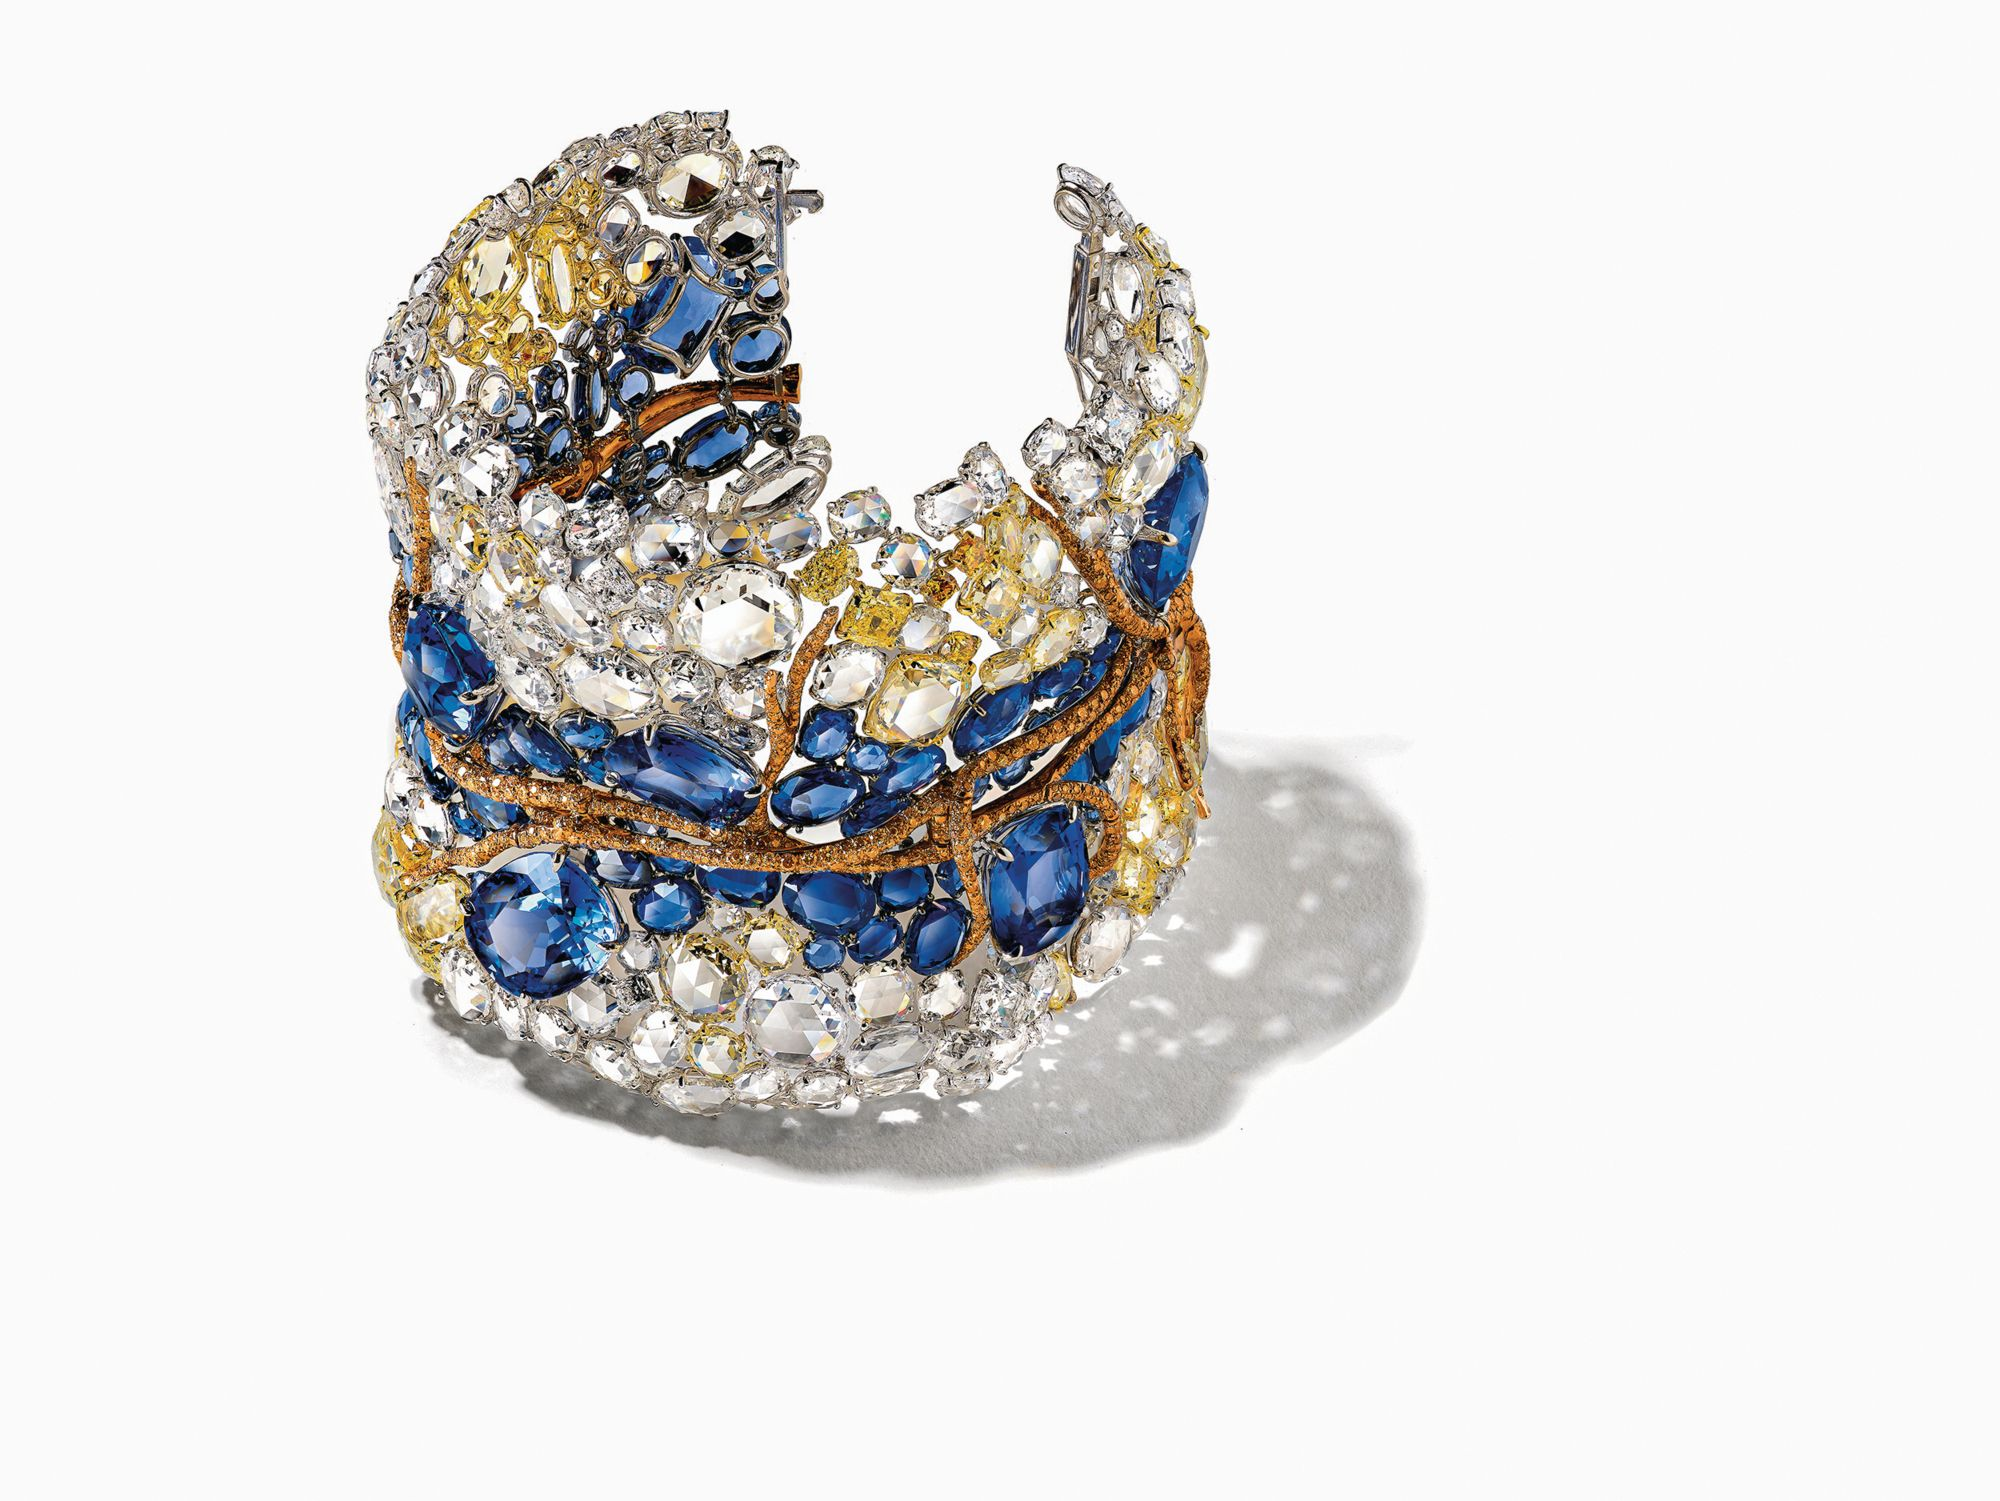 "2020 Black Label Masterpiece VI ""Reflection Bangle"" in white and yellow gold set with sapphires and diamonds by Cindy Chao (Photo: Courtesy of Cindy Chao)"